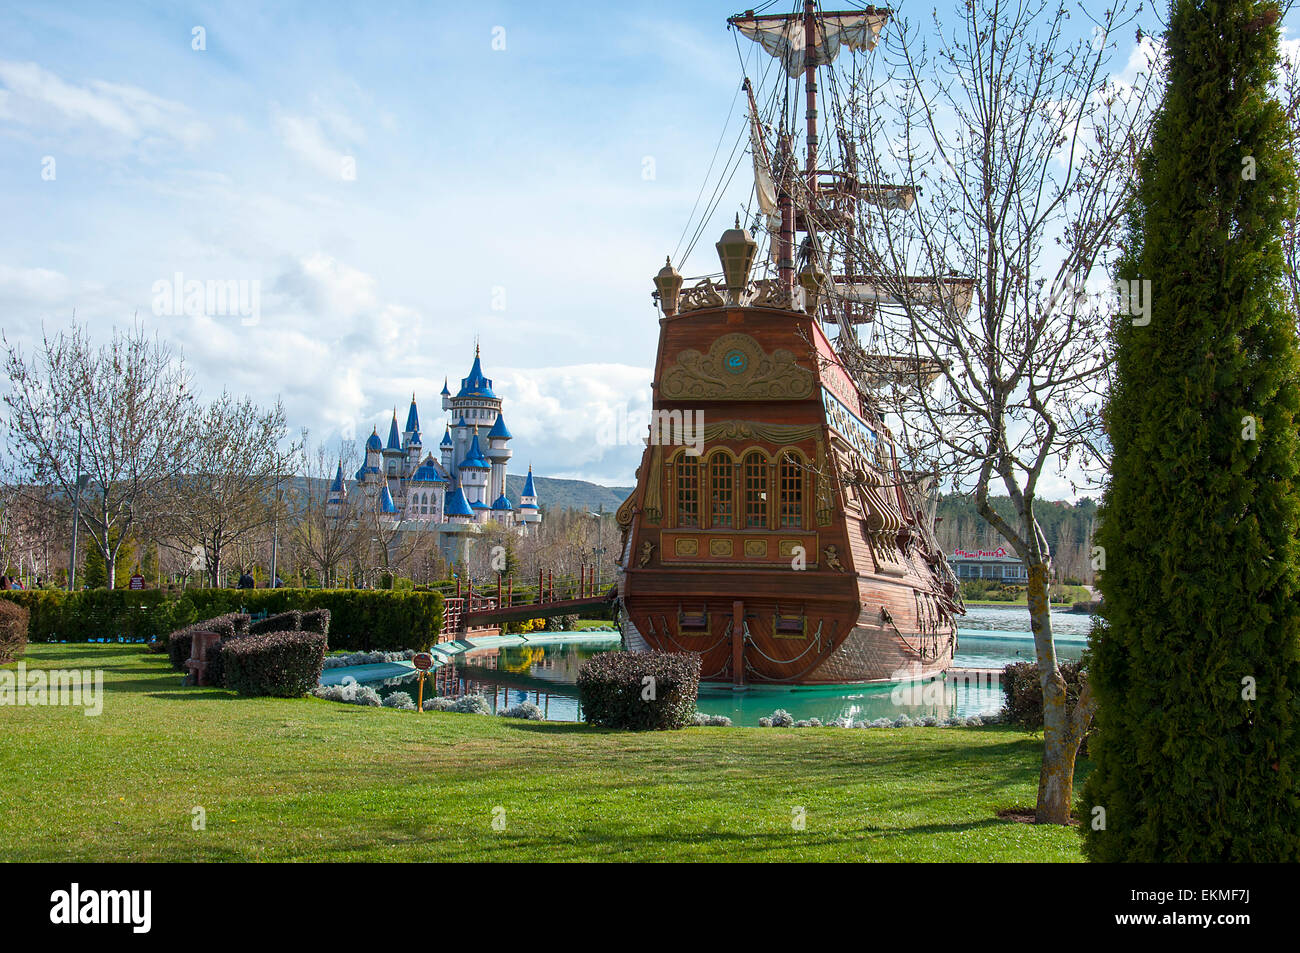 Pirate Ship In Garden Of Tale